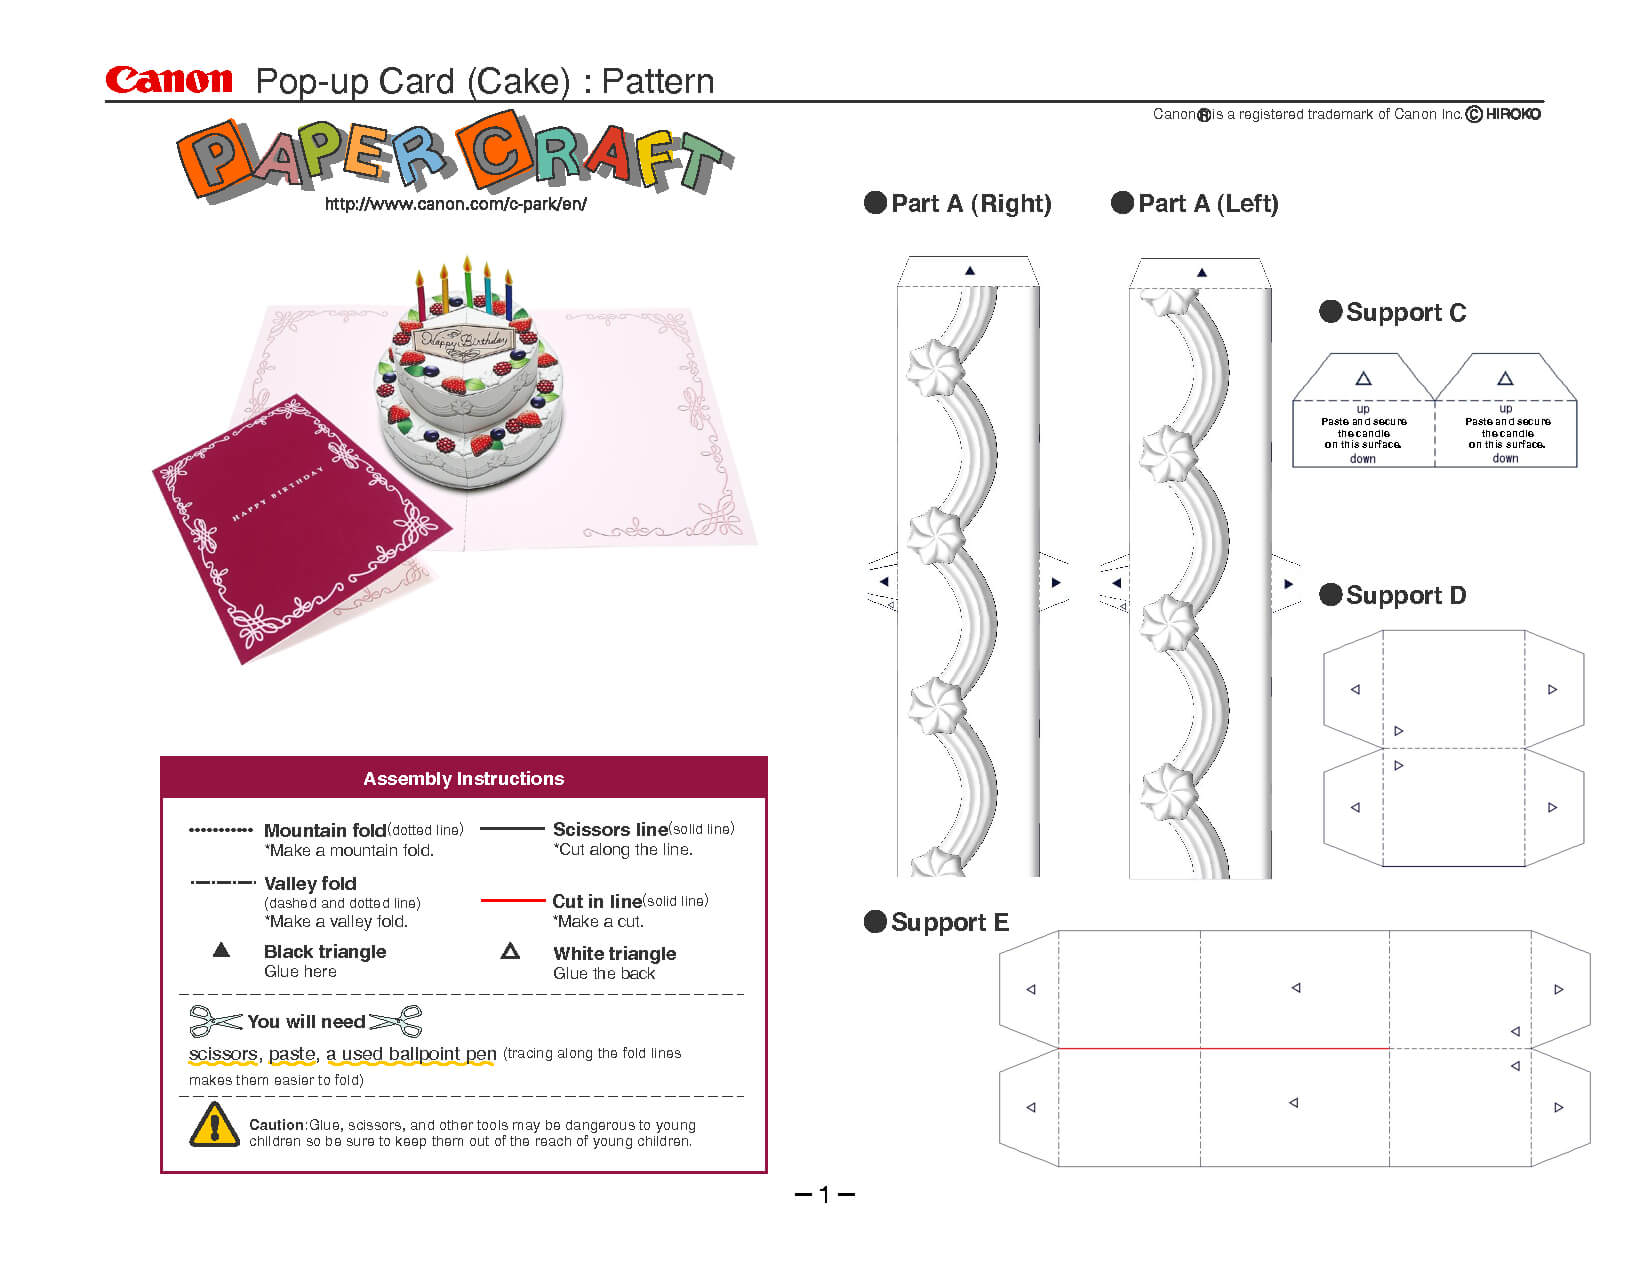 Birthday Cake Pop Up Card Template | Pop Up Card Templates With Printable Pop Up Card Templates Free